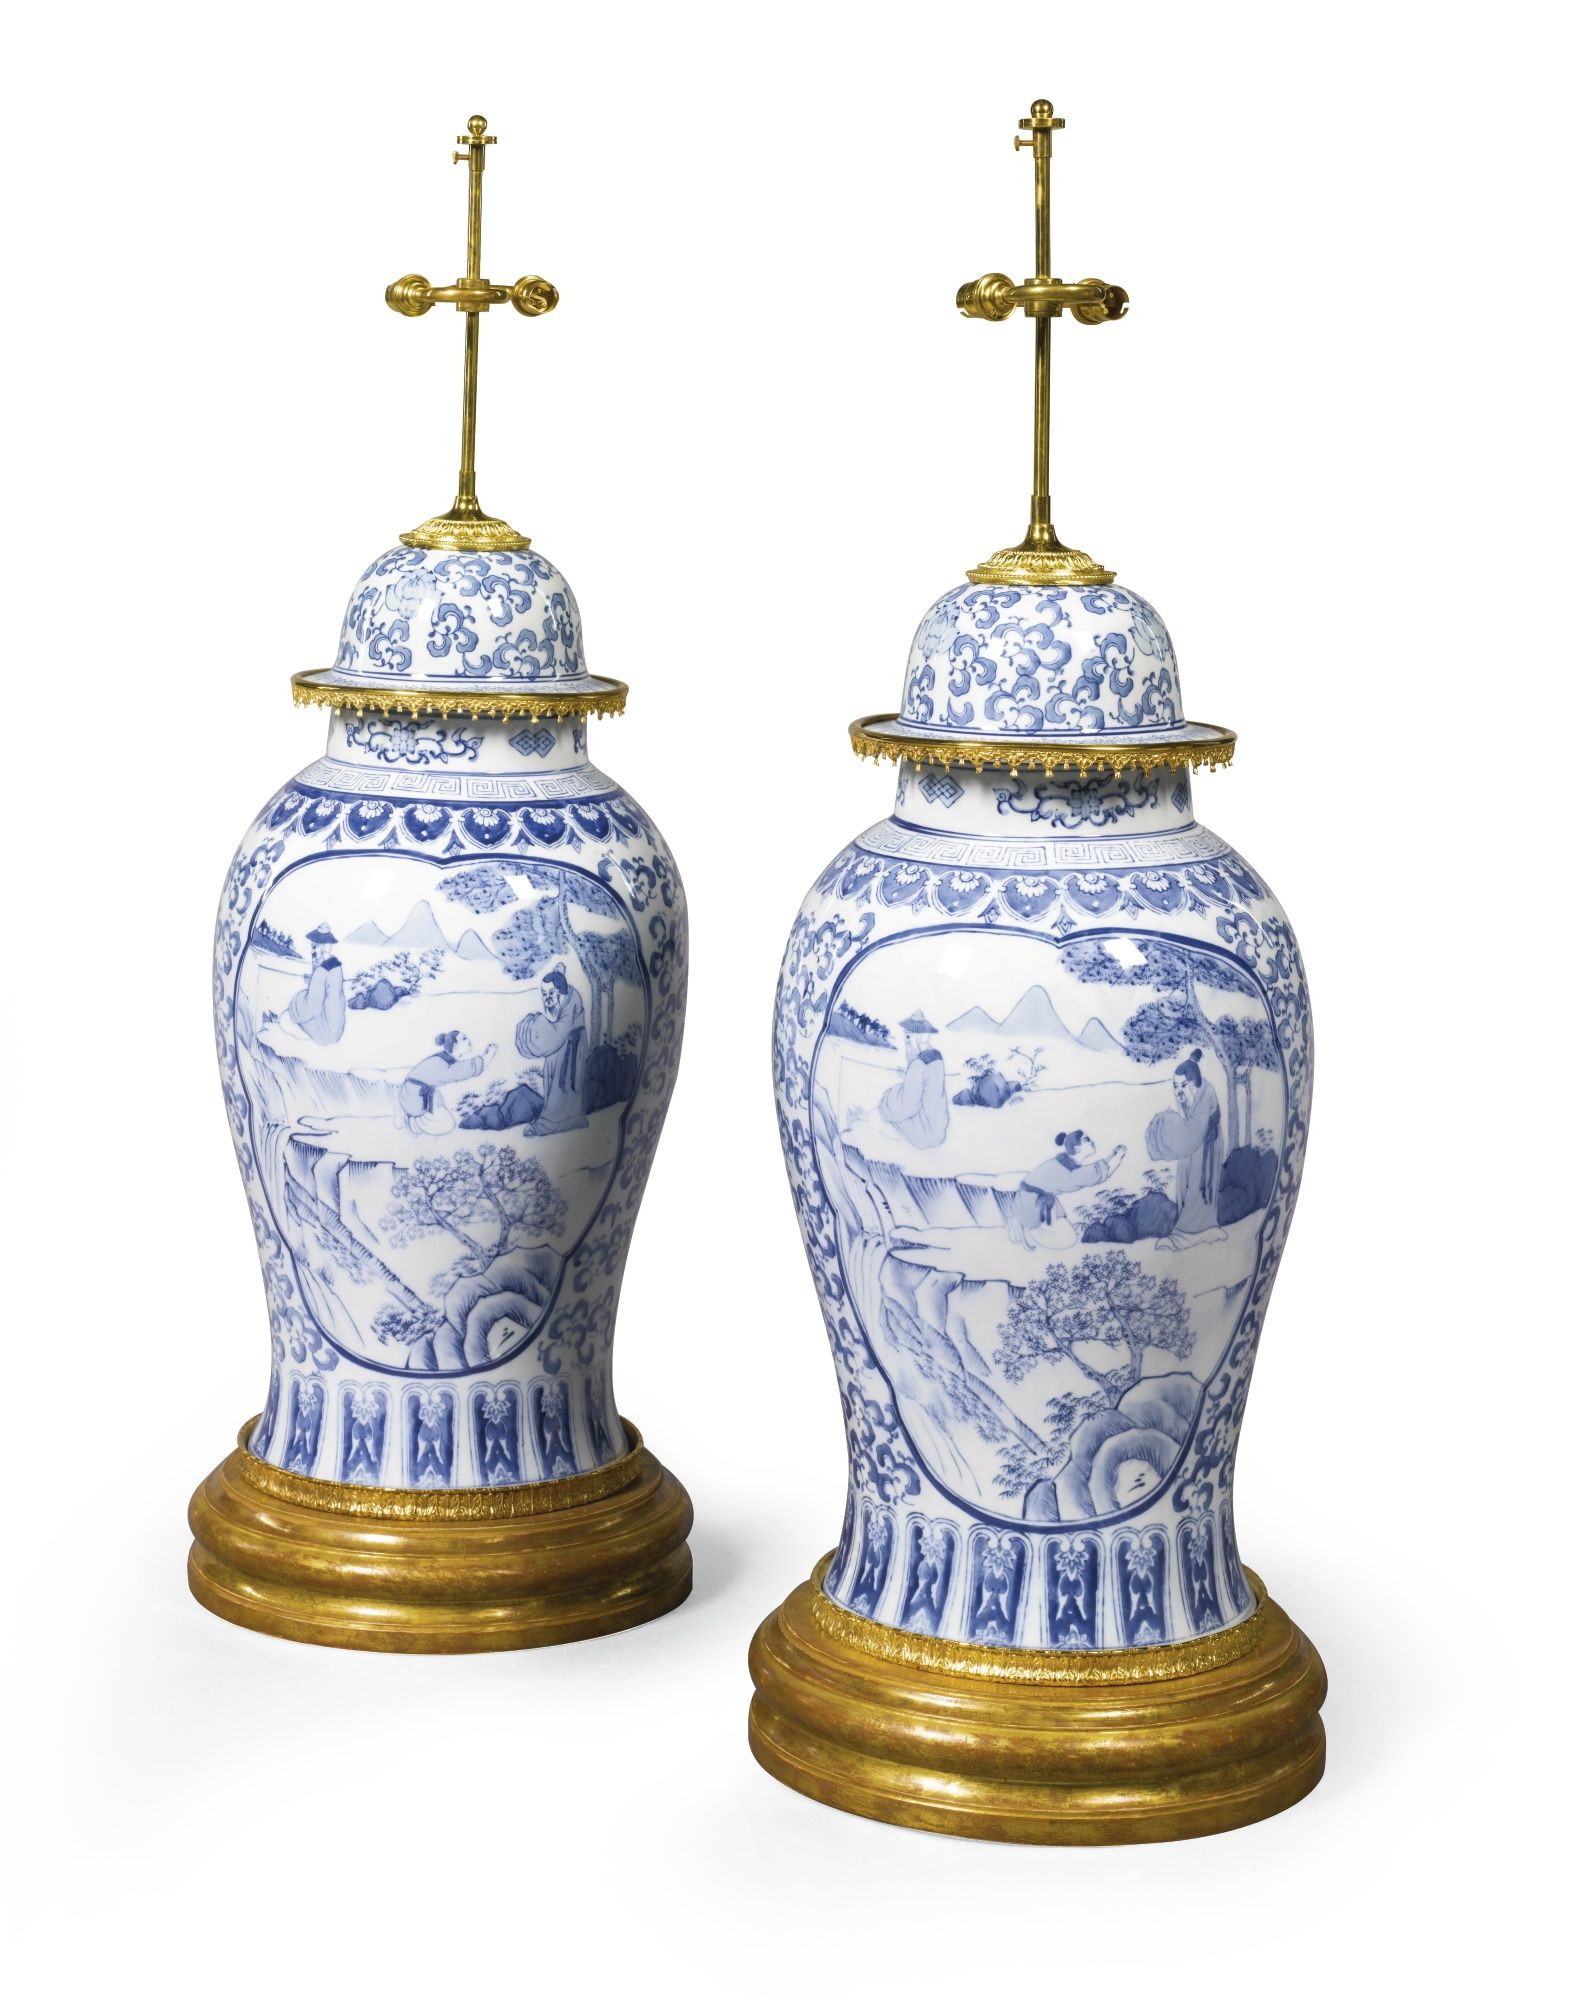 chinese vase lamp of a pair of large chinese blue and white porcelain vases and lids with a pair of large chinese blue and white porcelain vases and lids lot sothebys